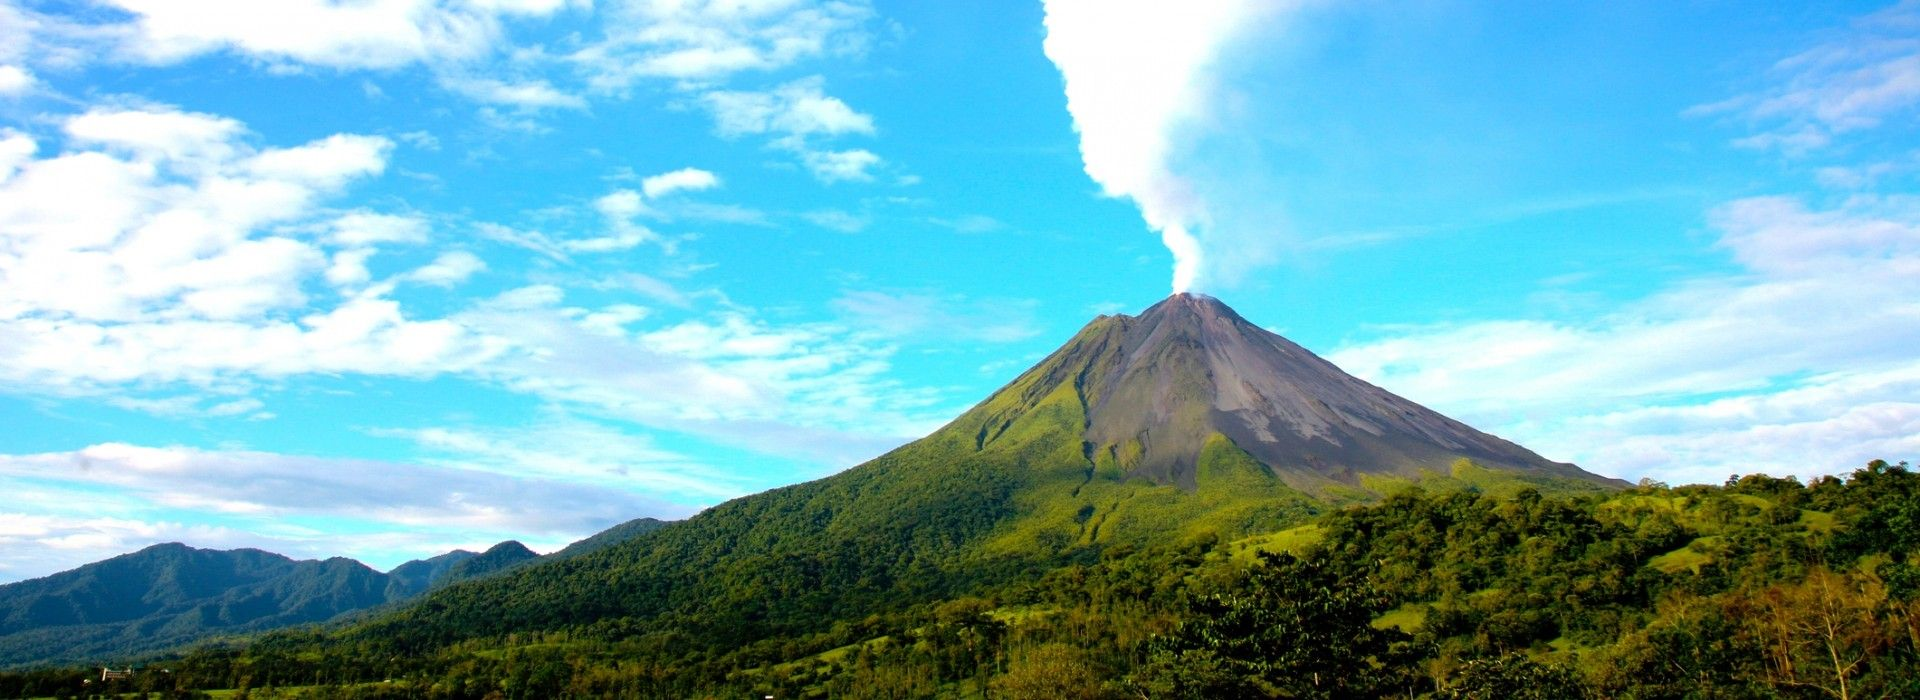 National parks Tours in Costa Rica